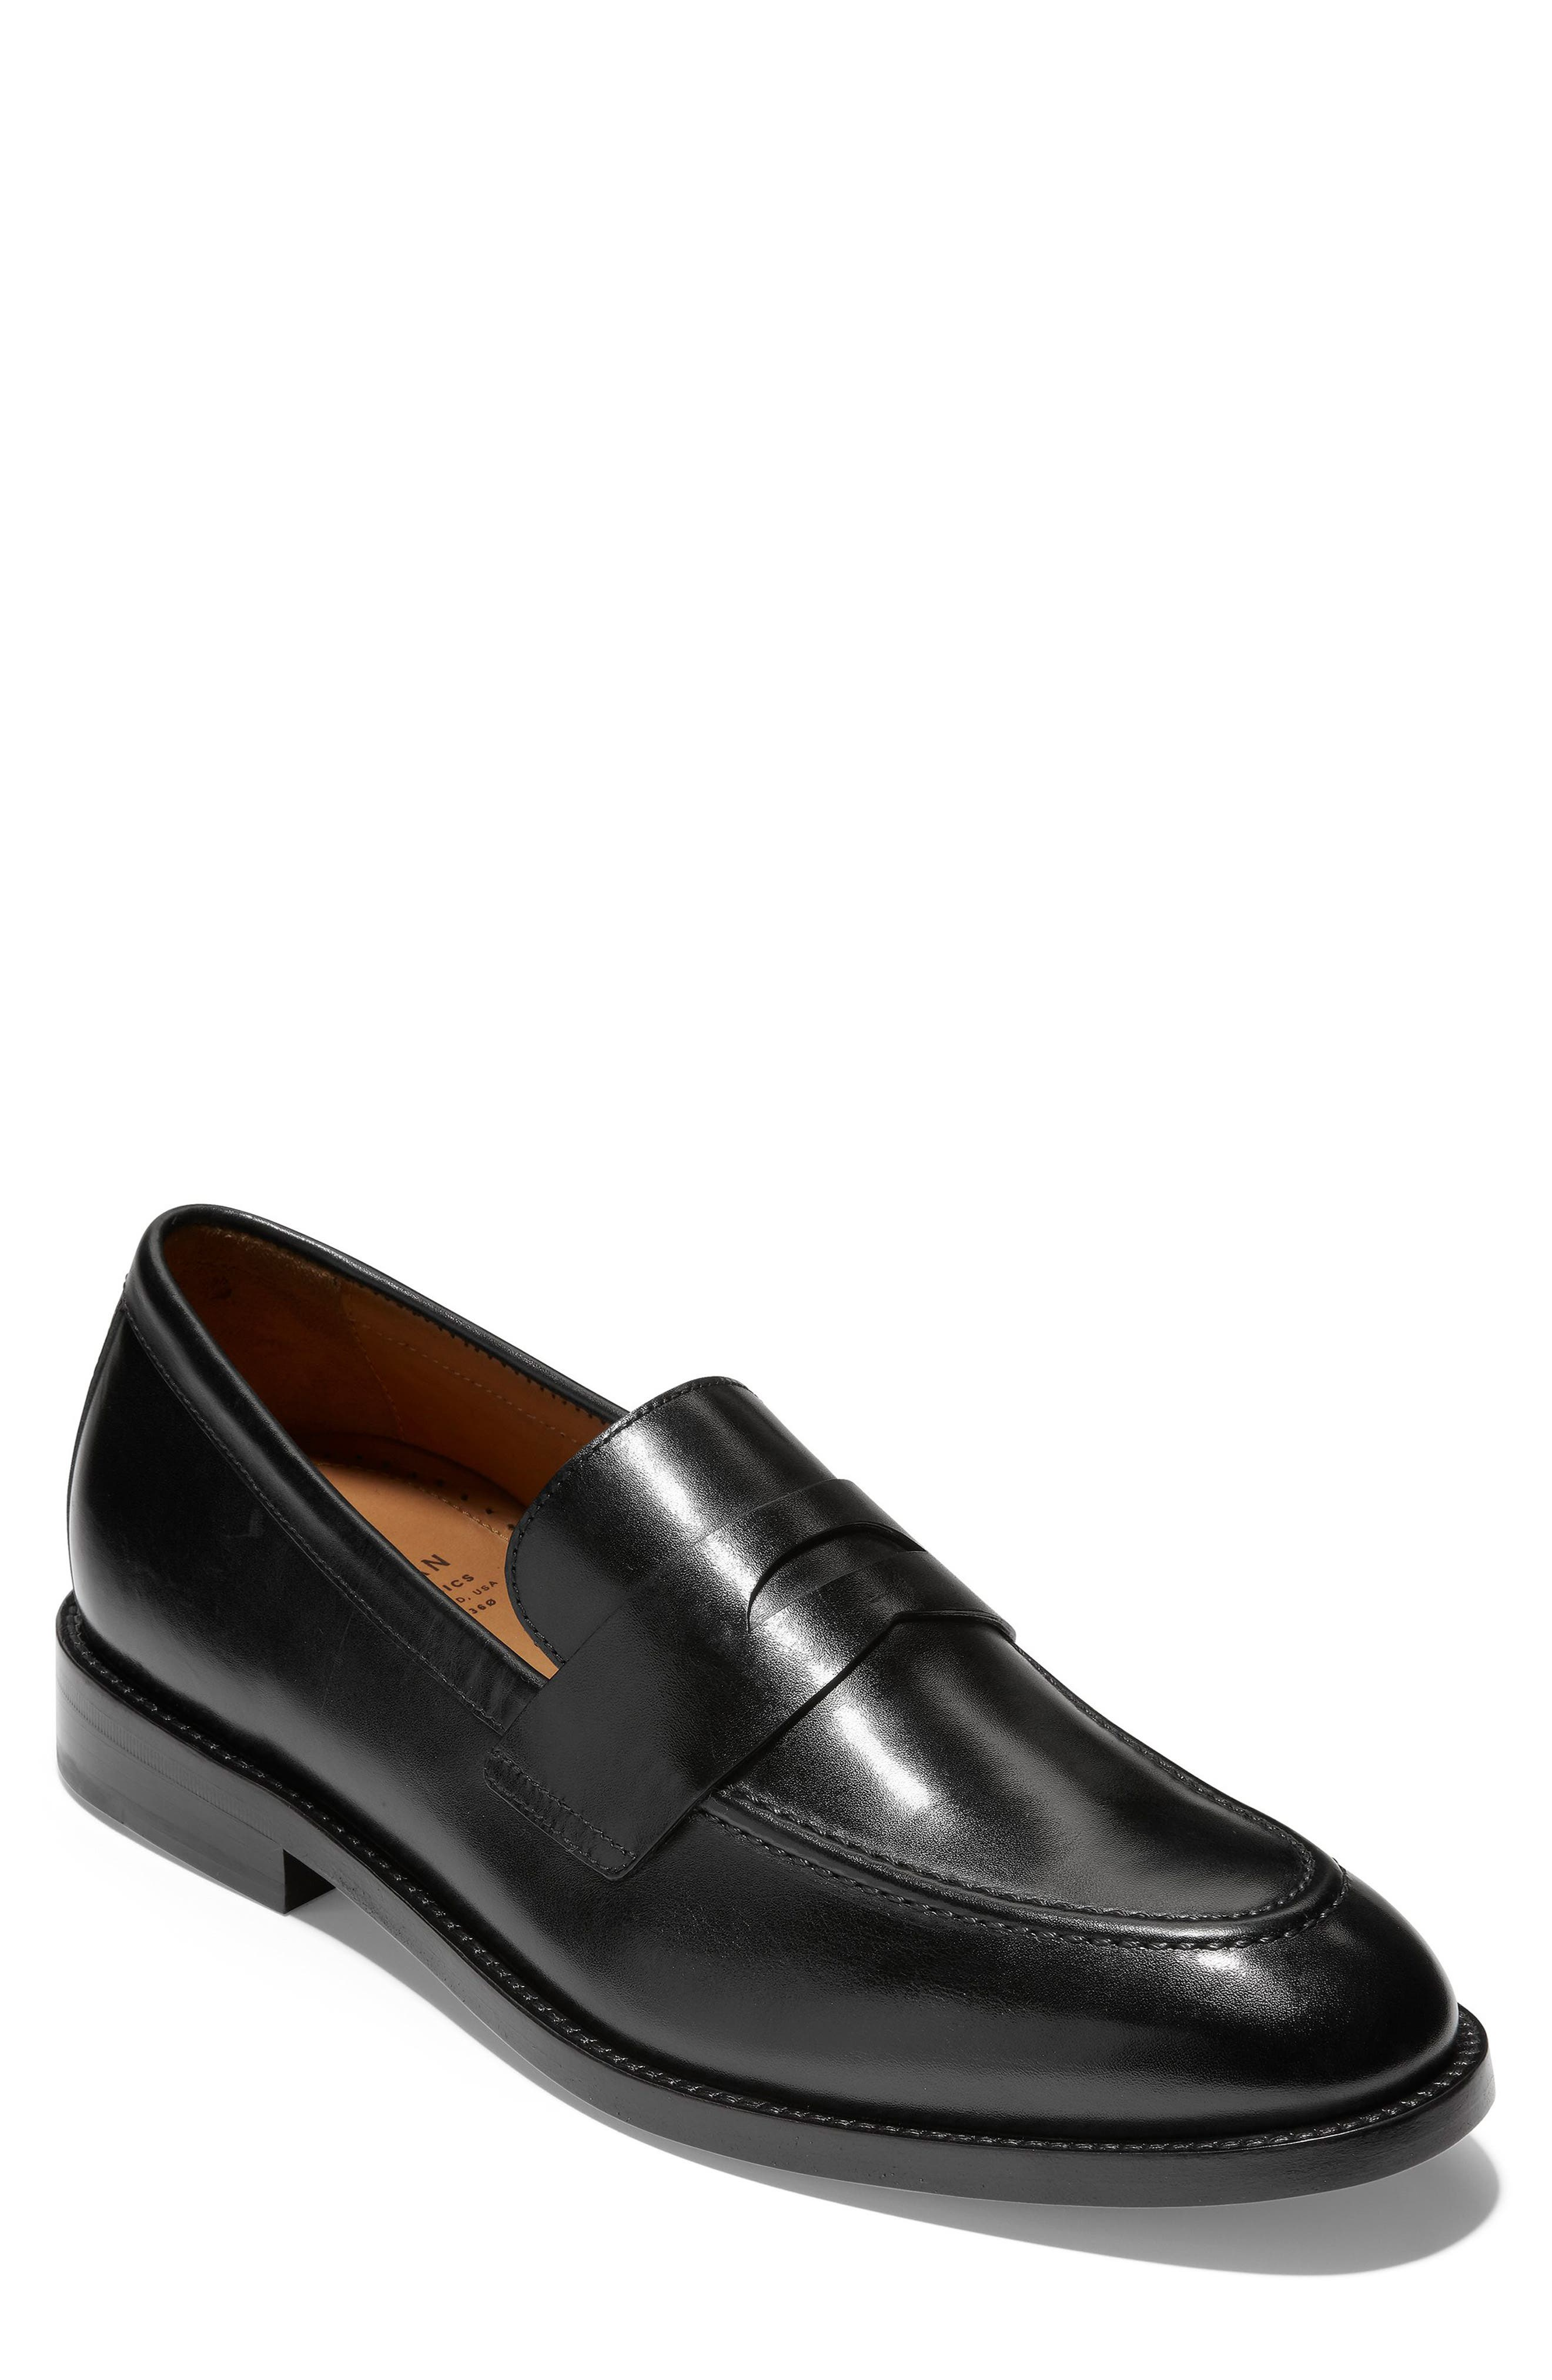 American Classics Kneeland Penny Loafer,                         Main,                         color, BLACK LEATHER